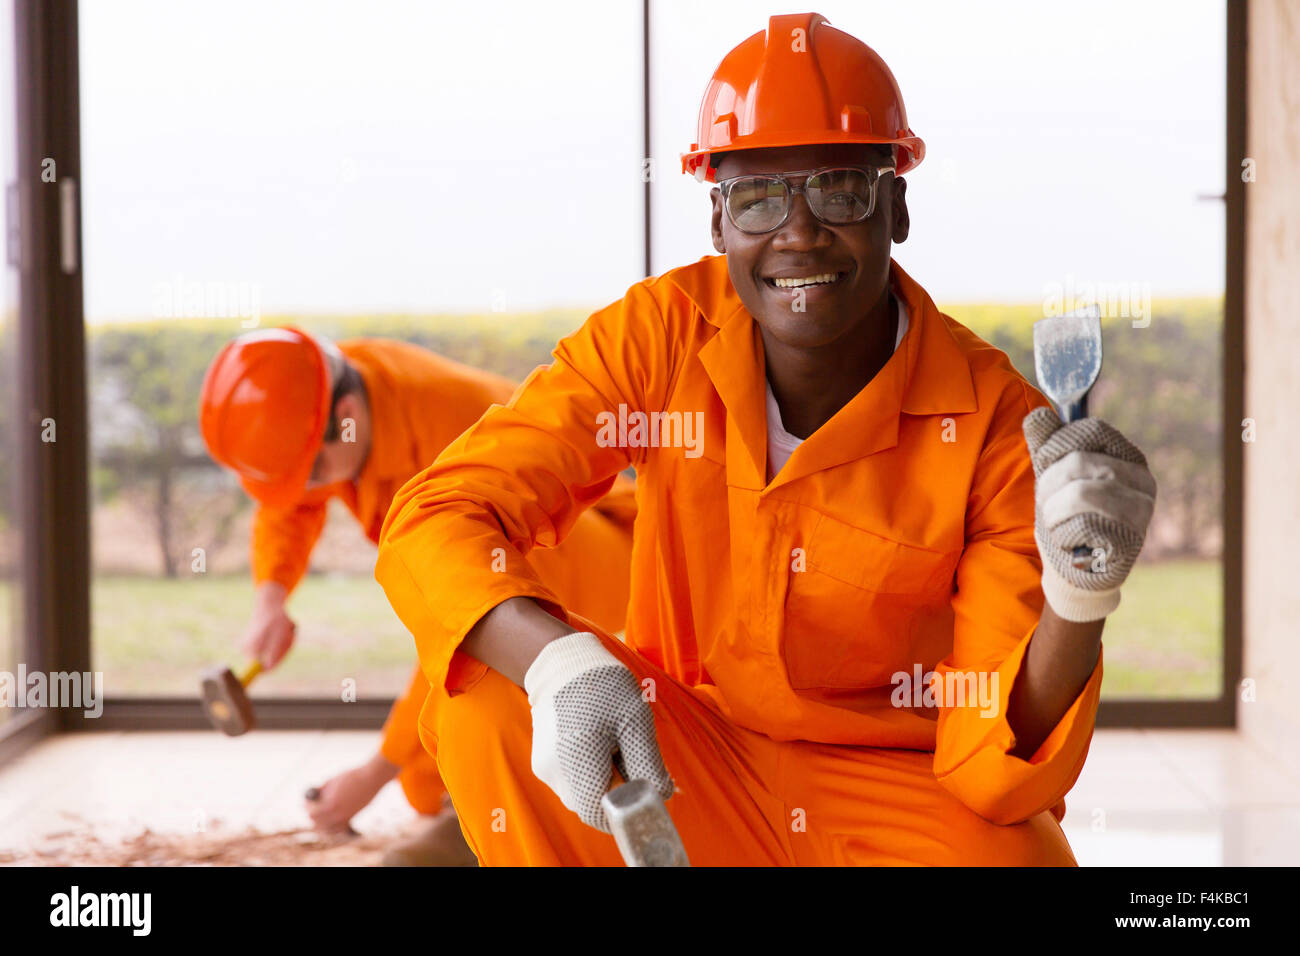 African workman holding chisel and hammer inside house under construction - Stock Image